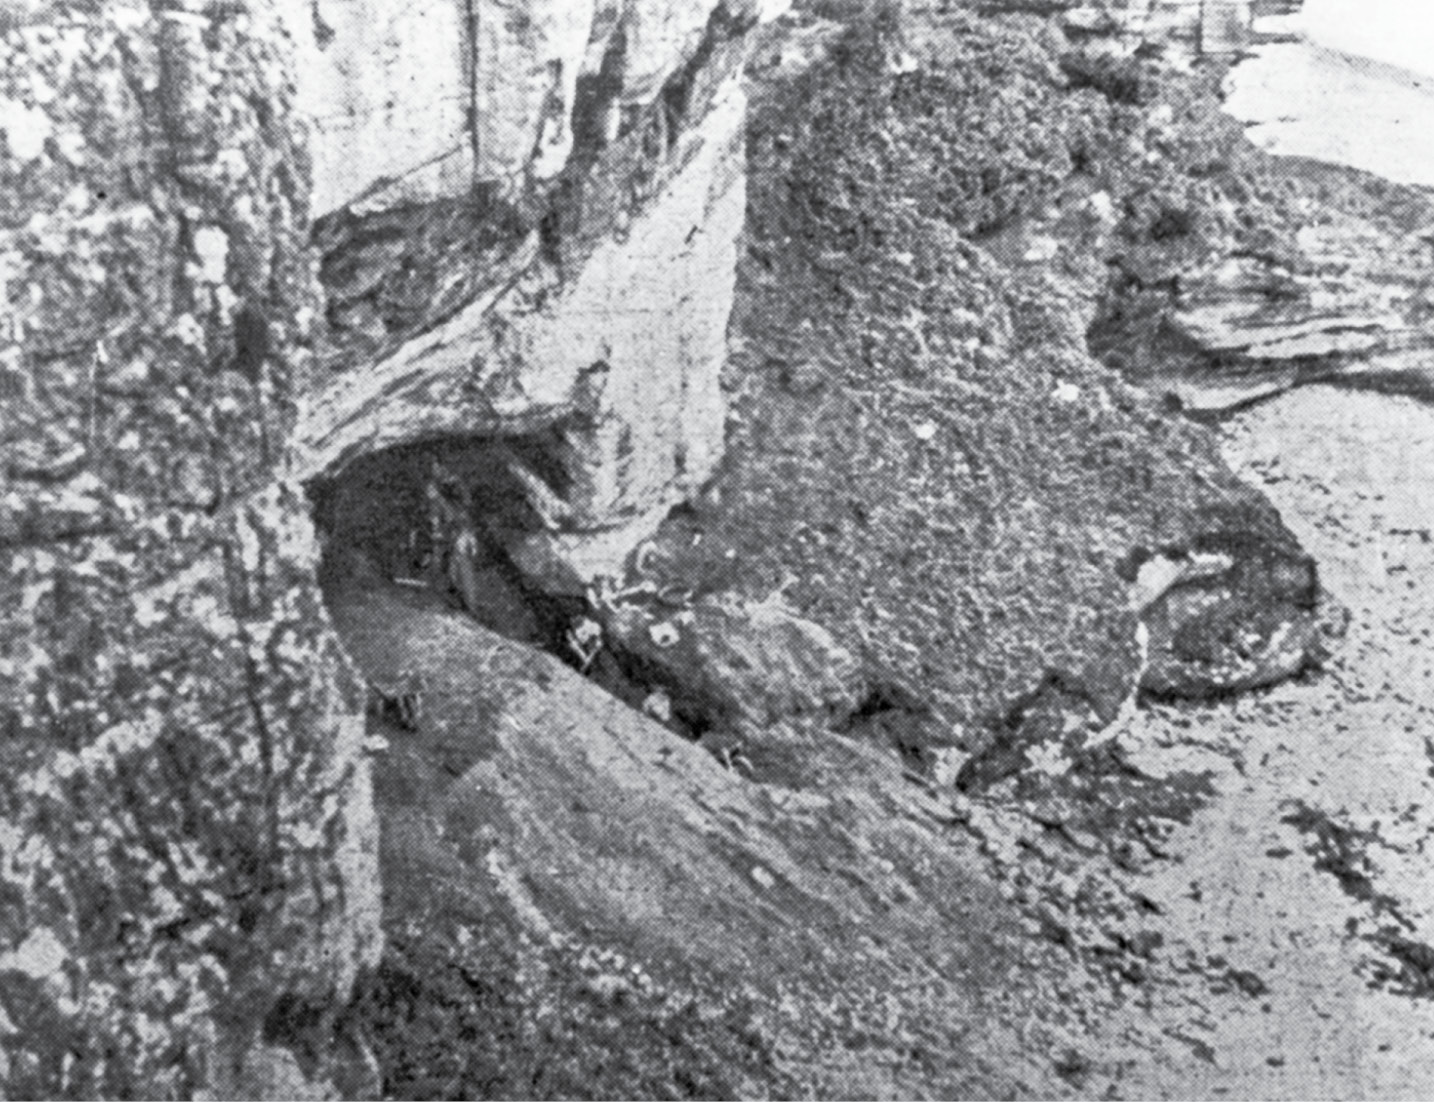 right Sylvia Benton excavated at the Sculptor's Cave between 1928 and 1930.